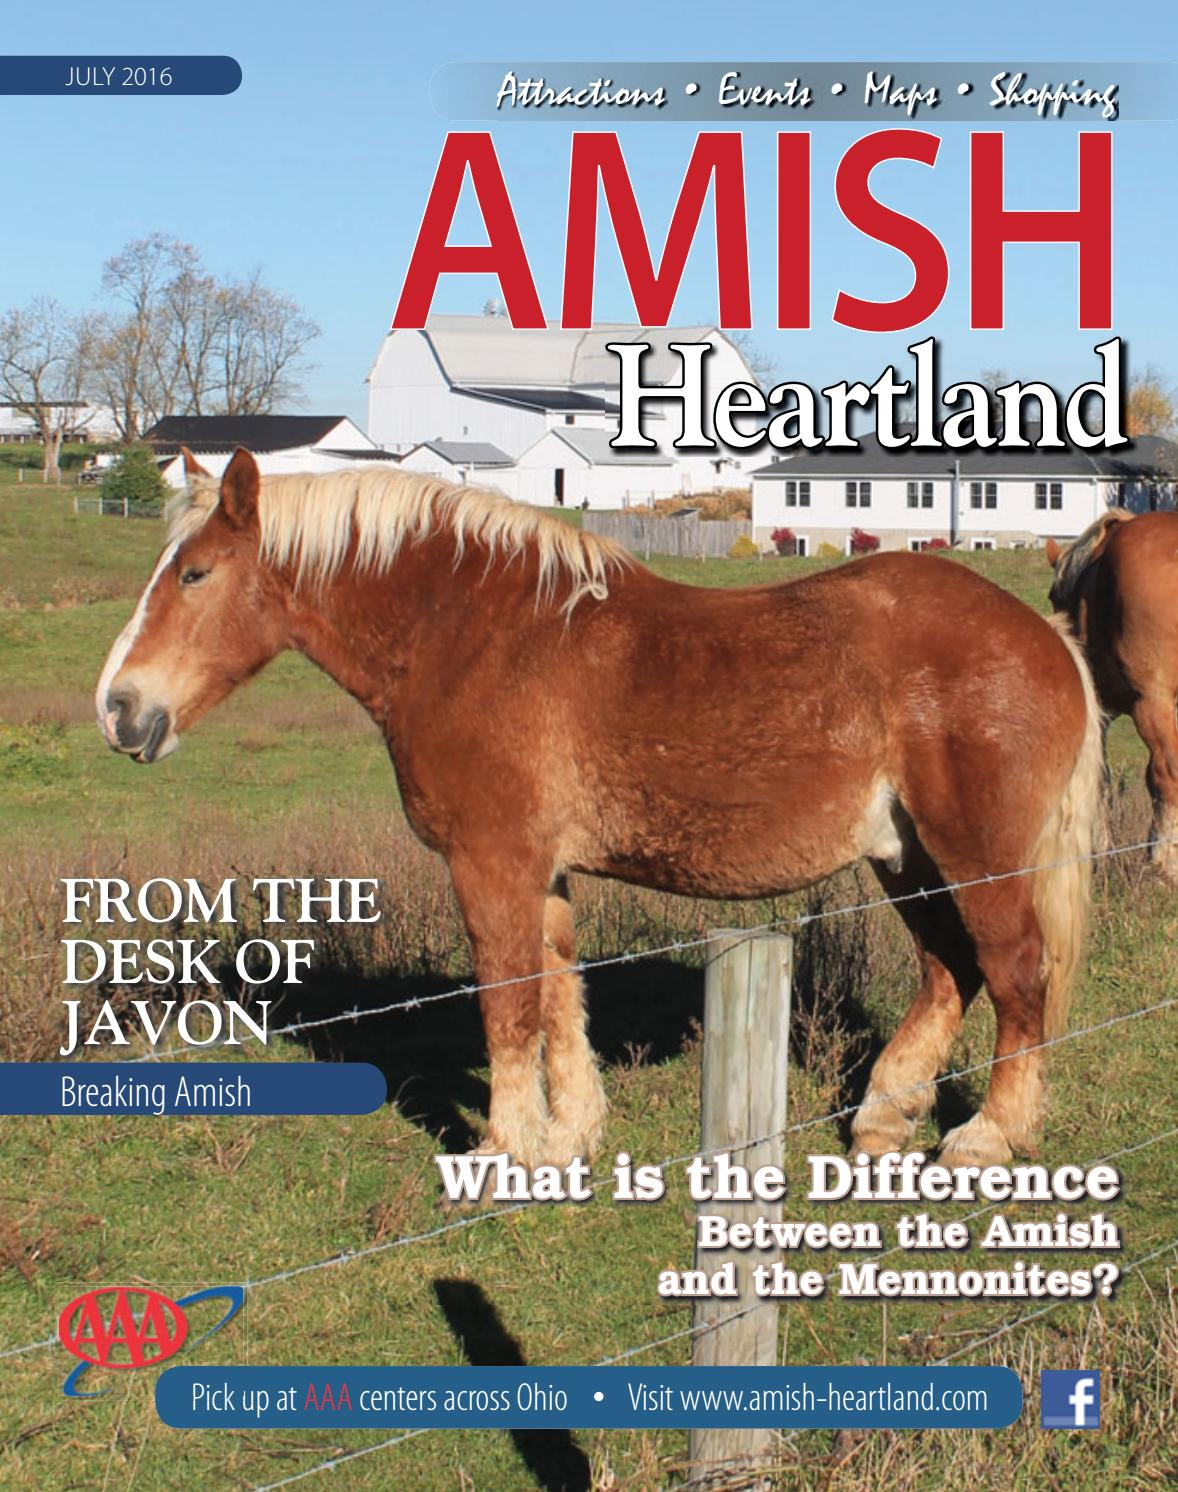 amish heartland by gatehouse media neo issuu